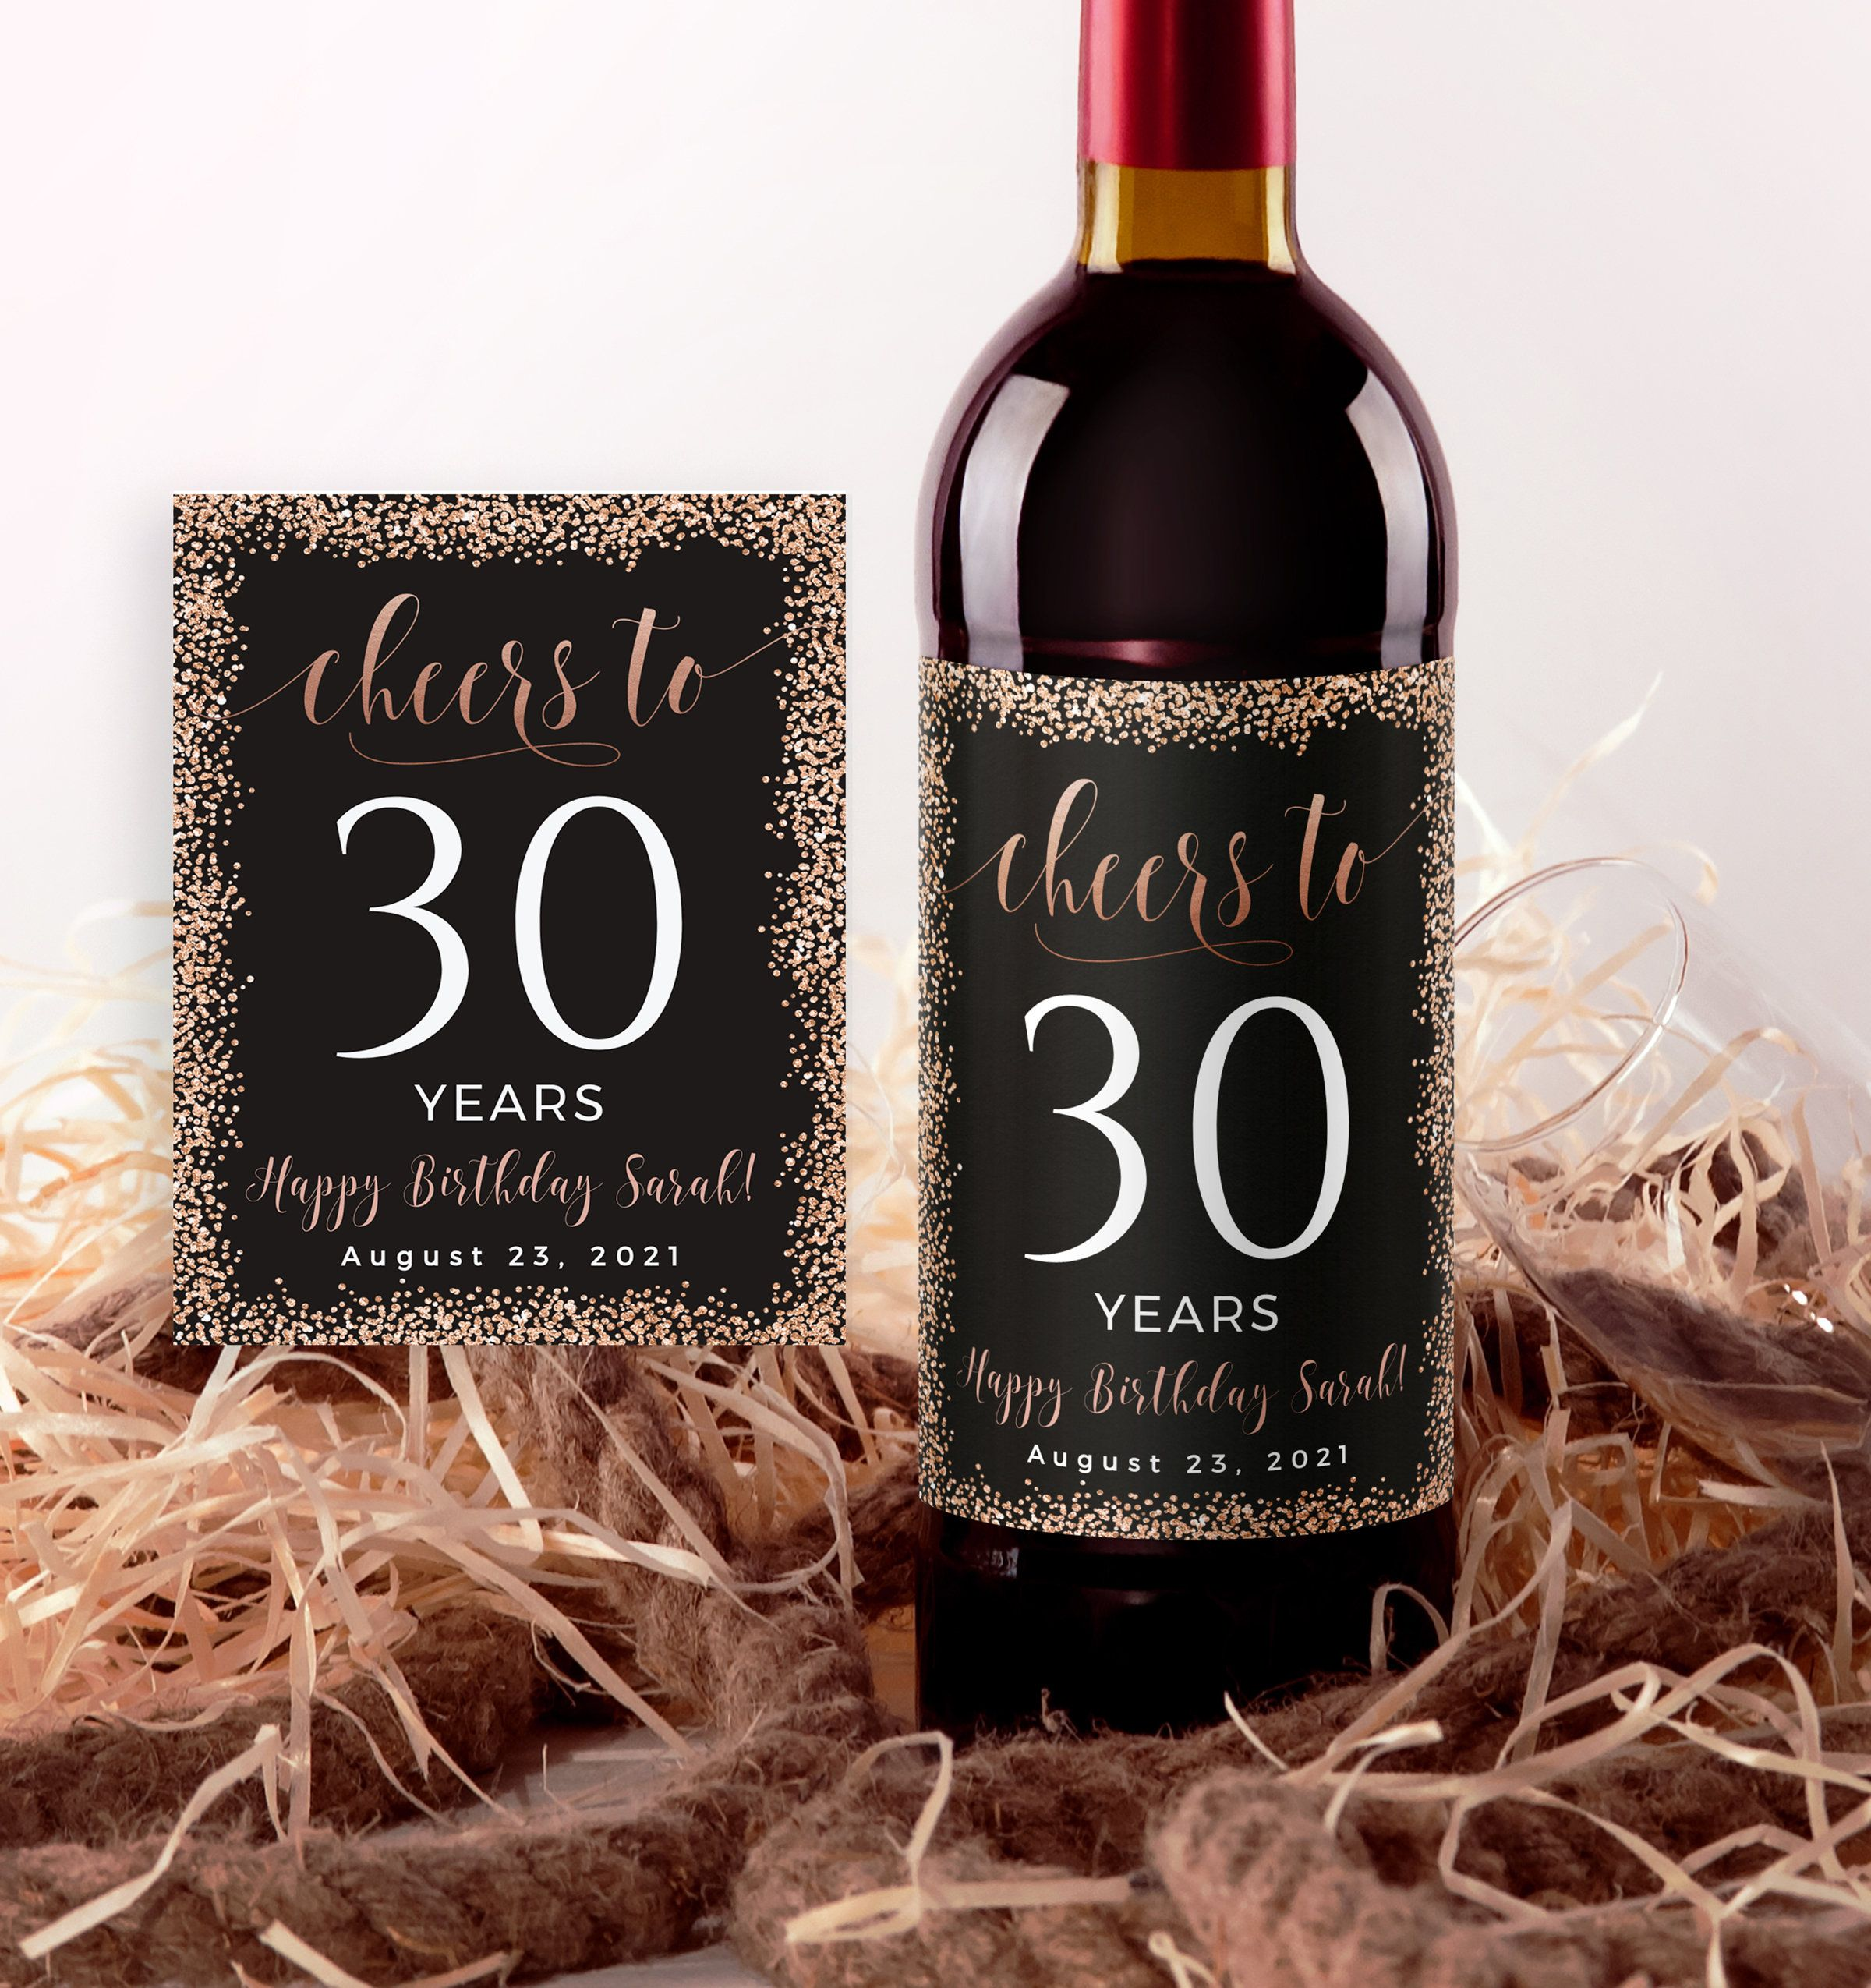 Birthday Wine Label Template Cheers To 30 Years 40th Birthday Etsy Wine Label Template Birthday Wine Label Wine Label Printable Birthday wine label template free